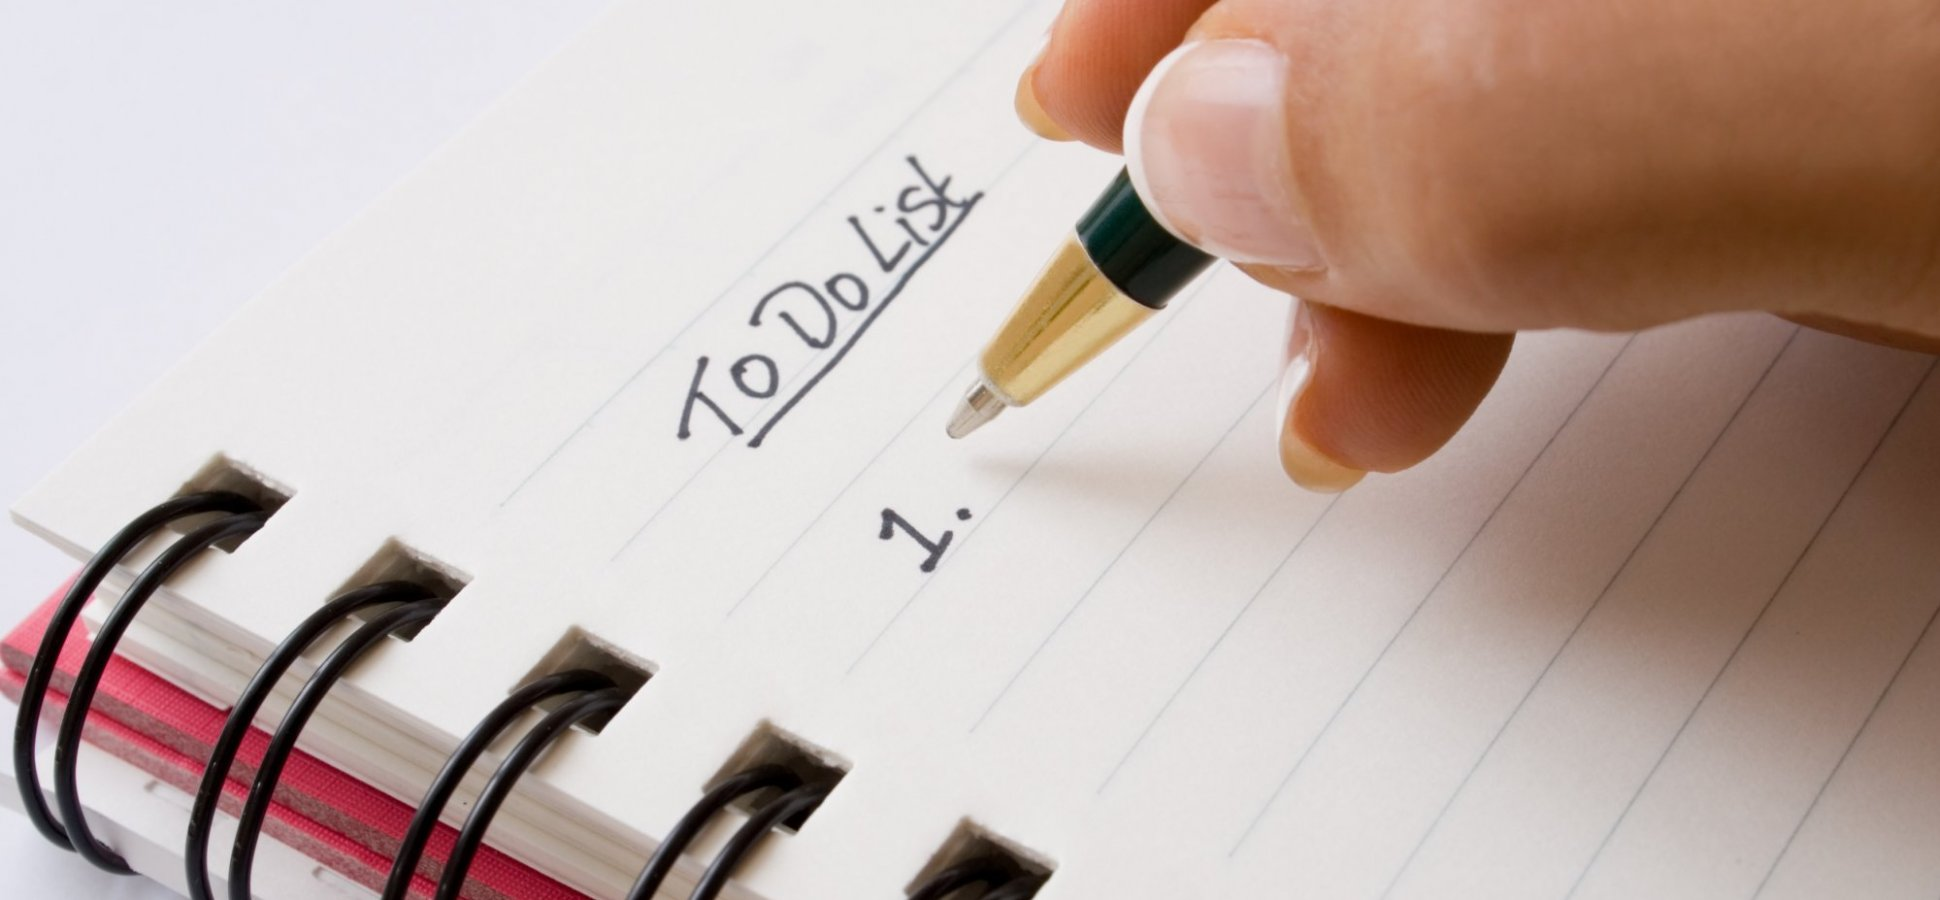 Your To-Do List Is Costing You Money